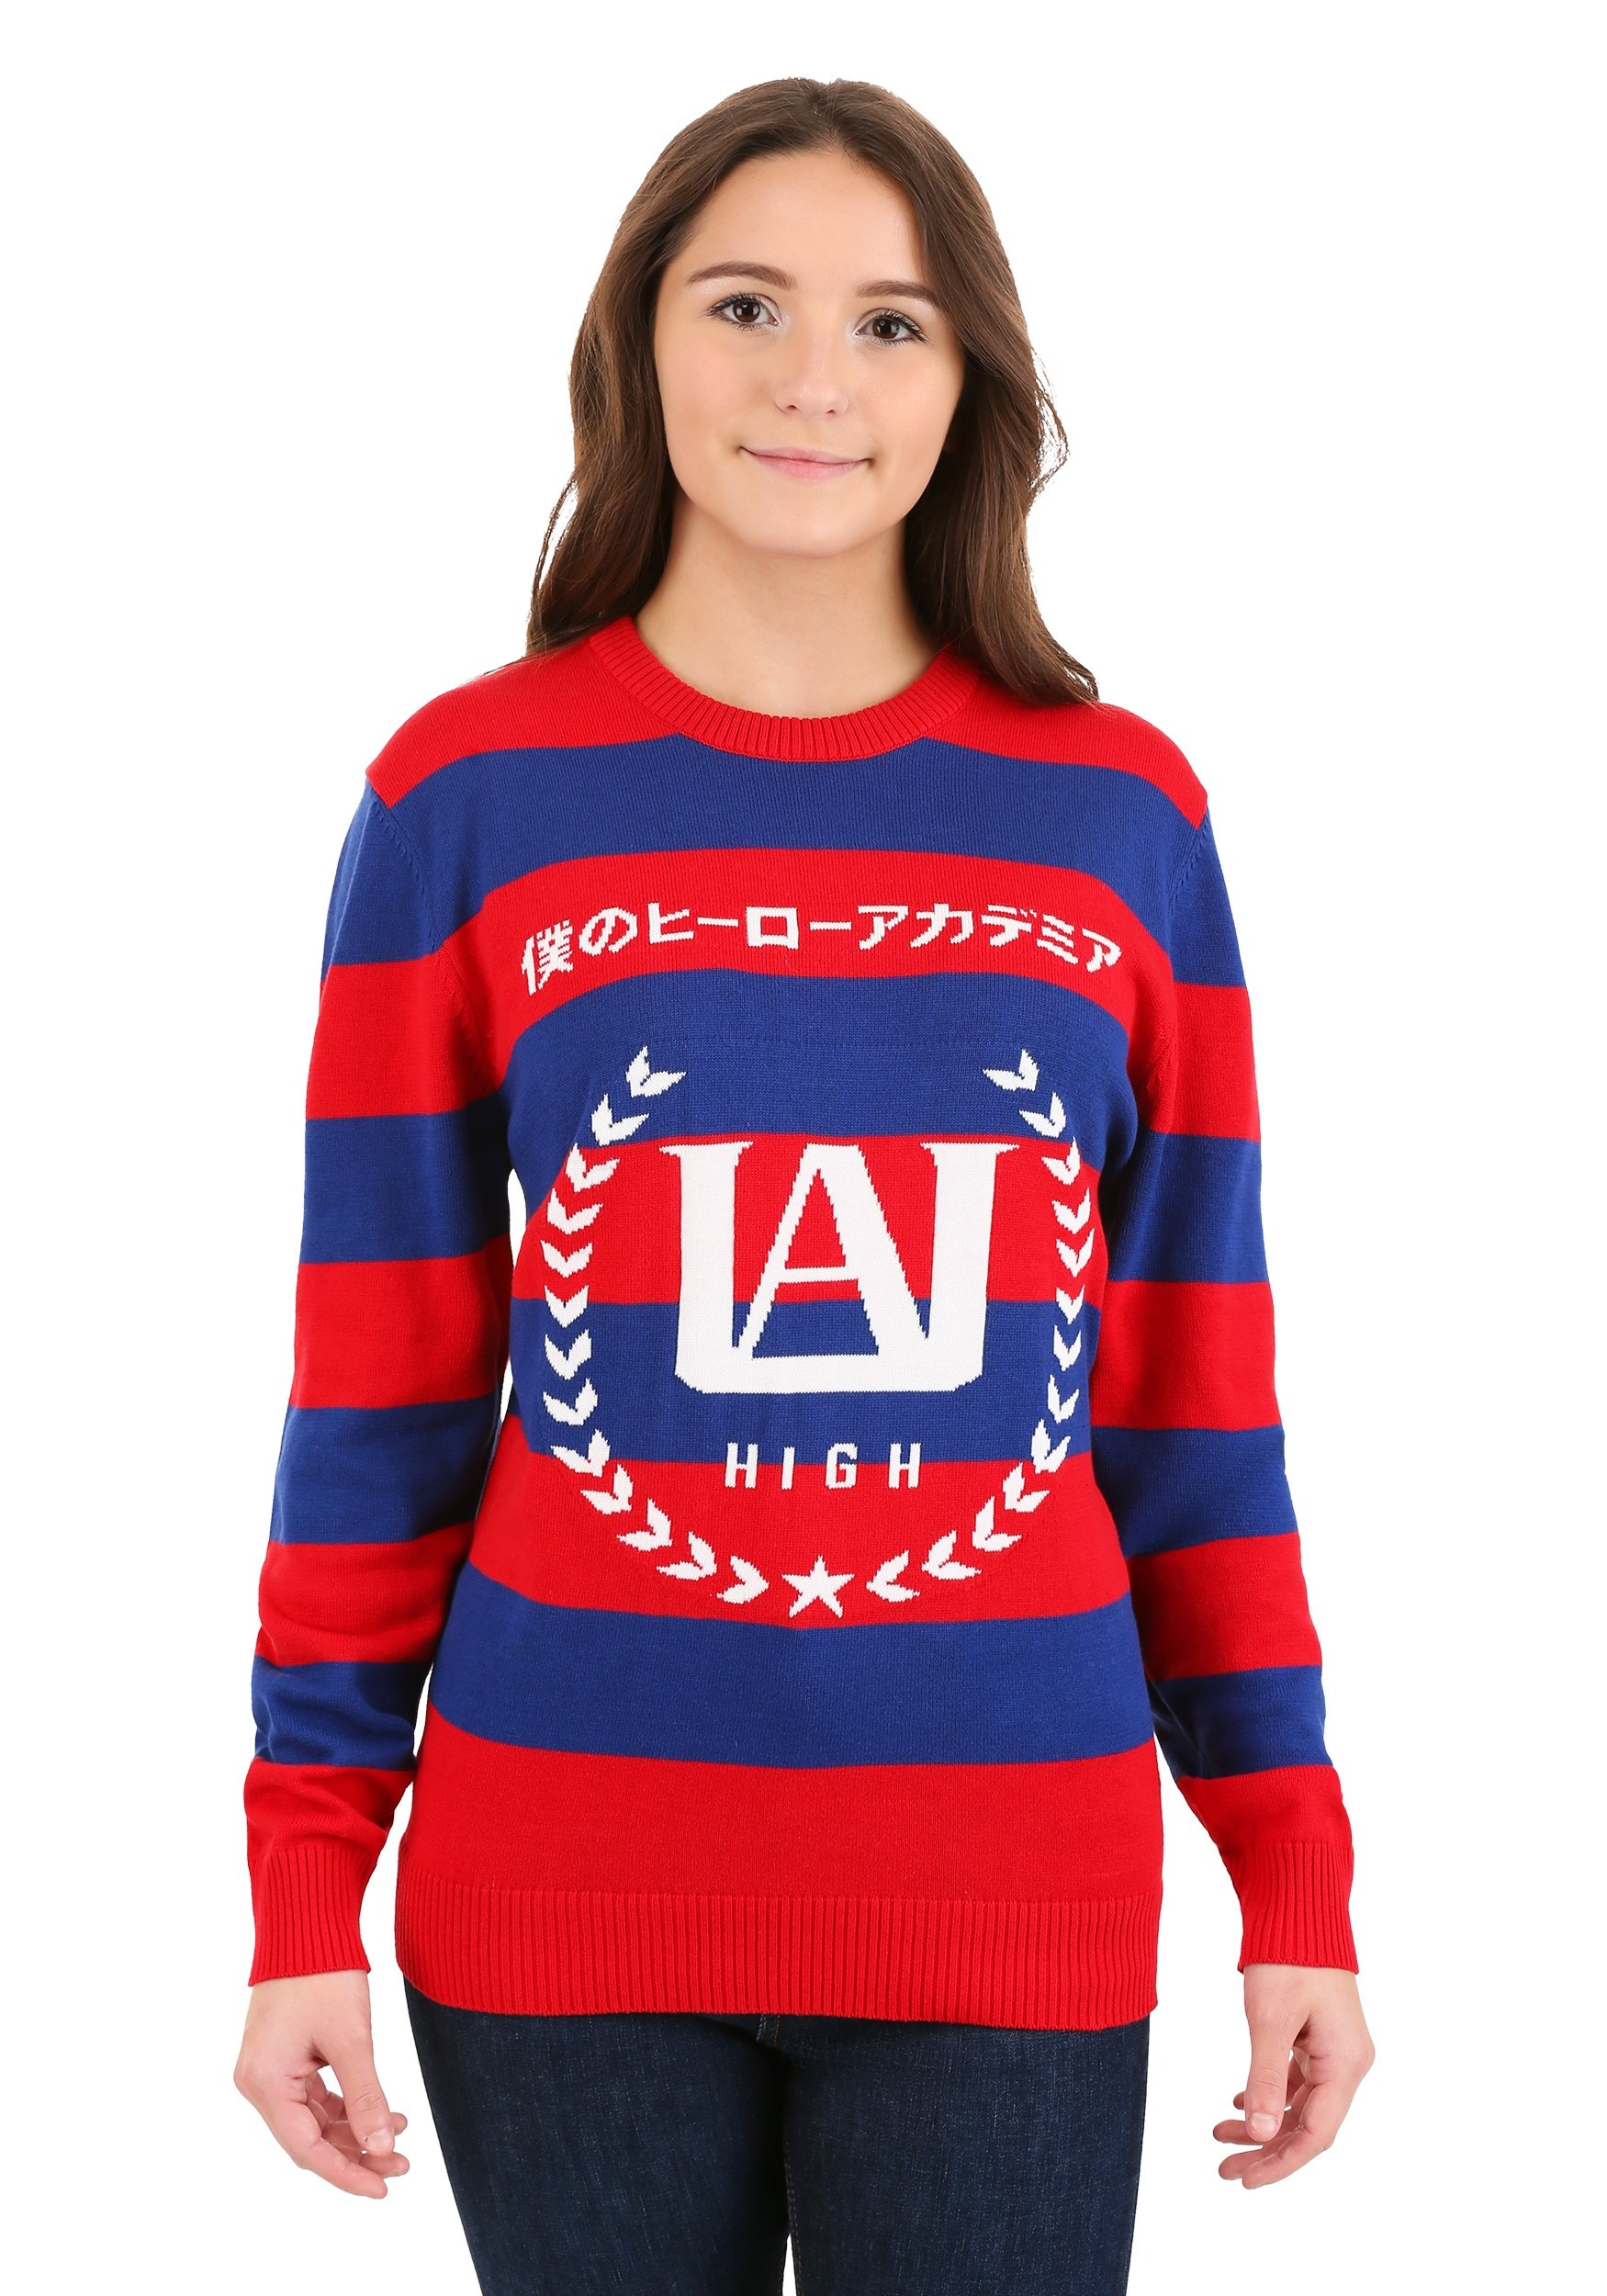 My Hero Academia Striped Sweater for Adults